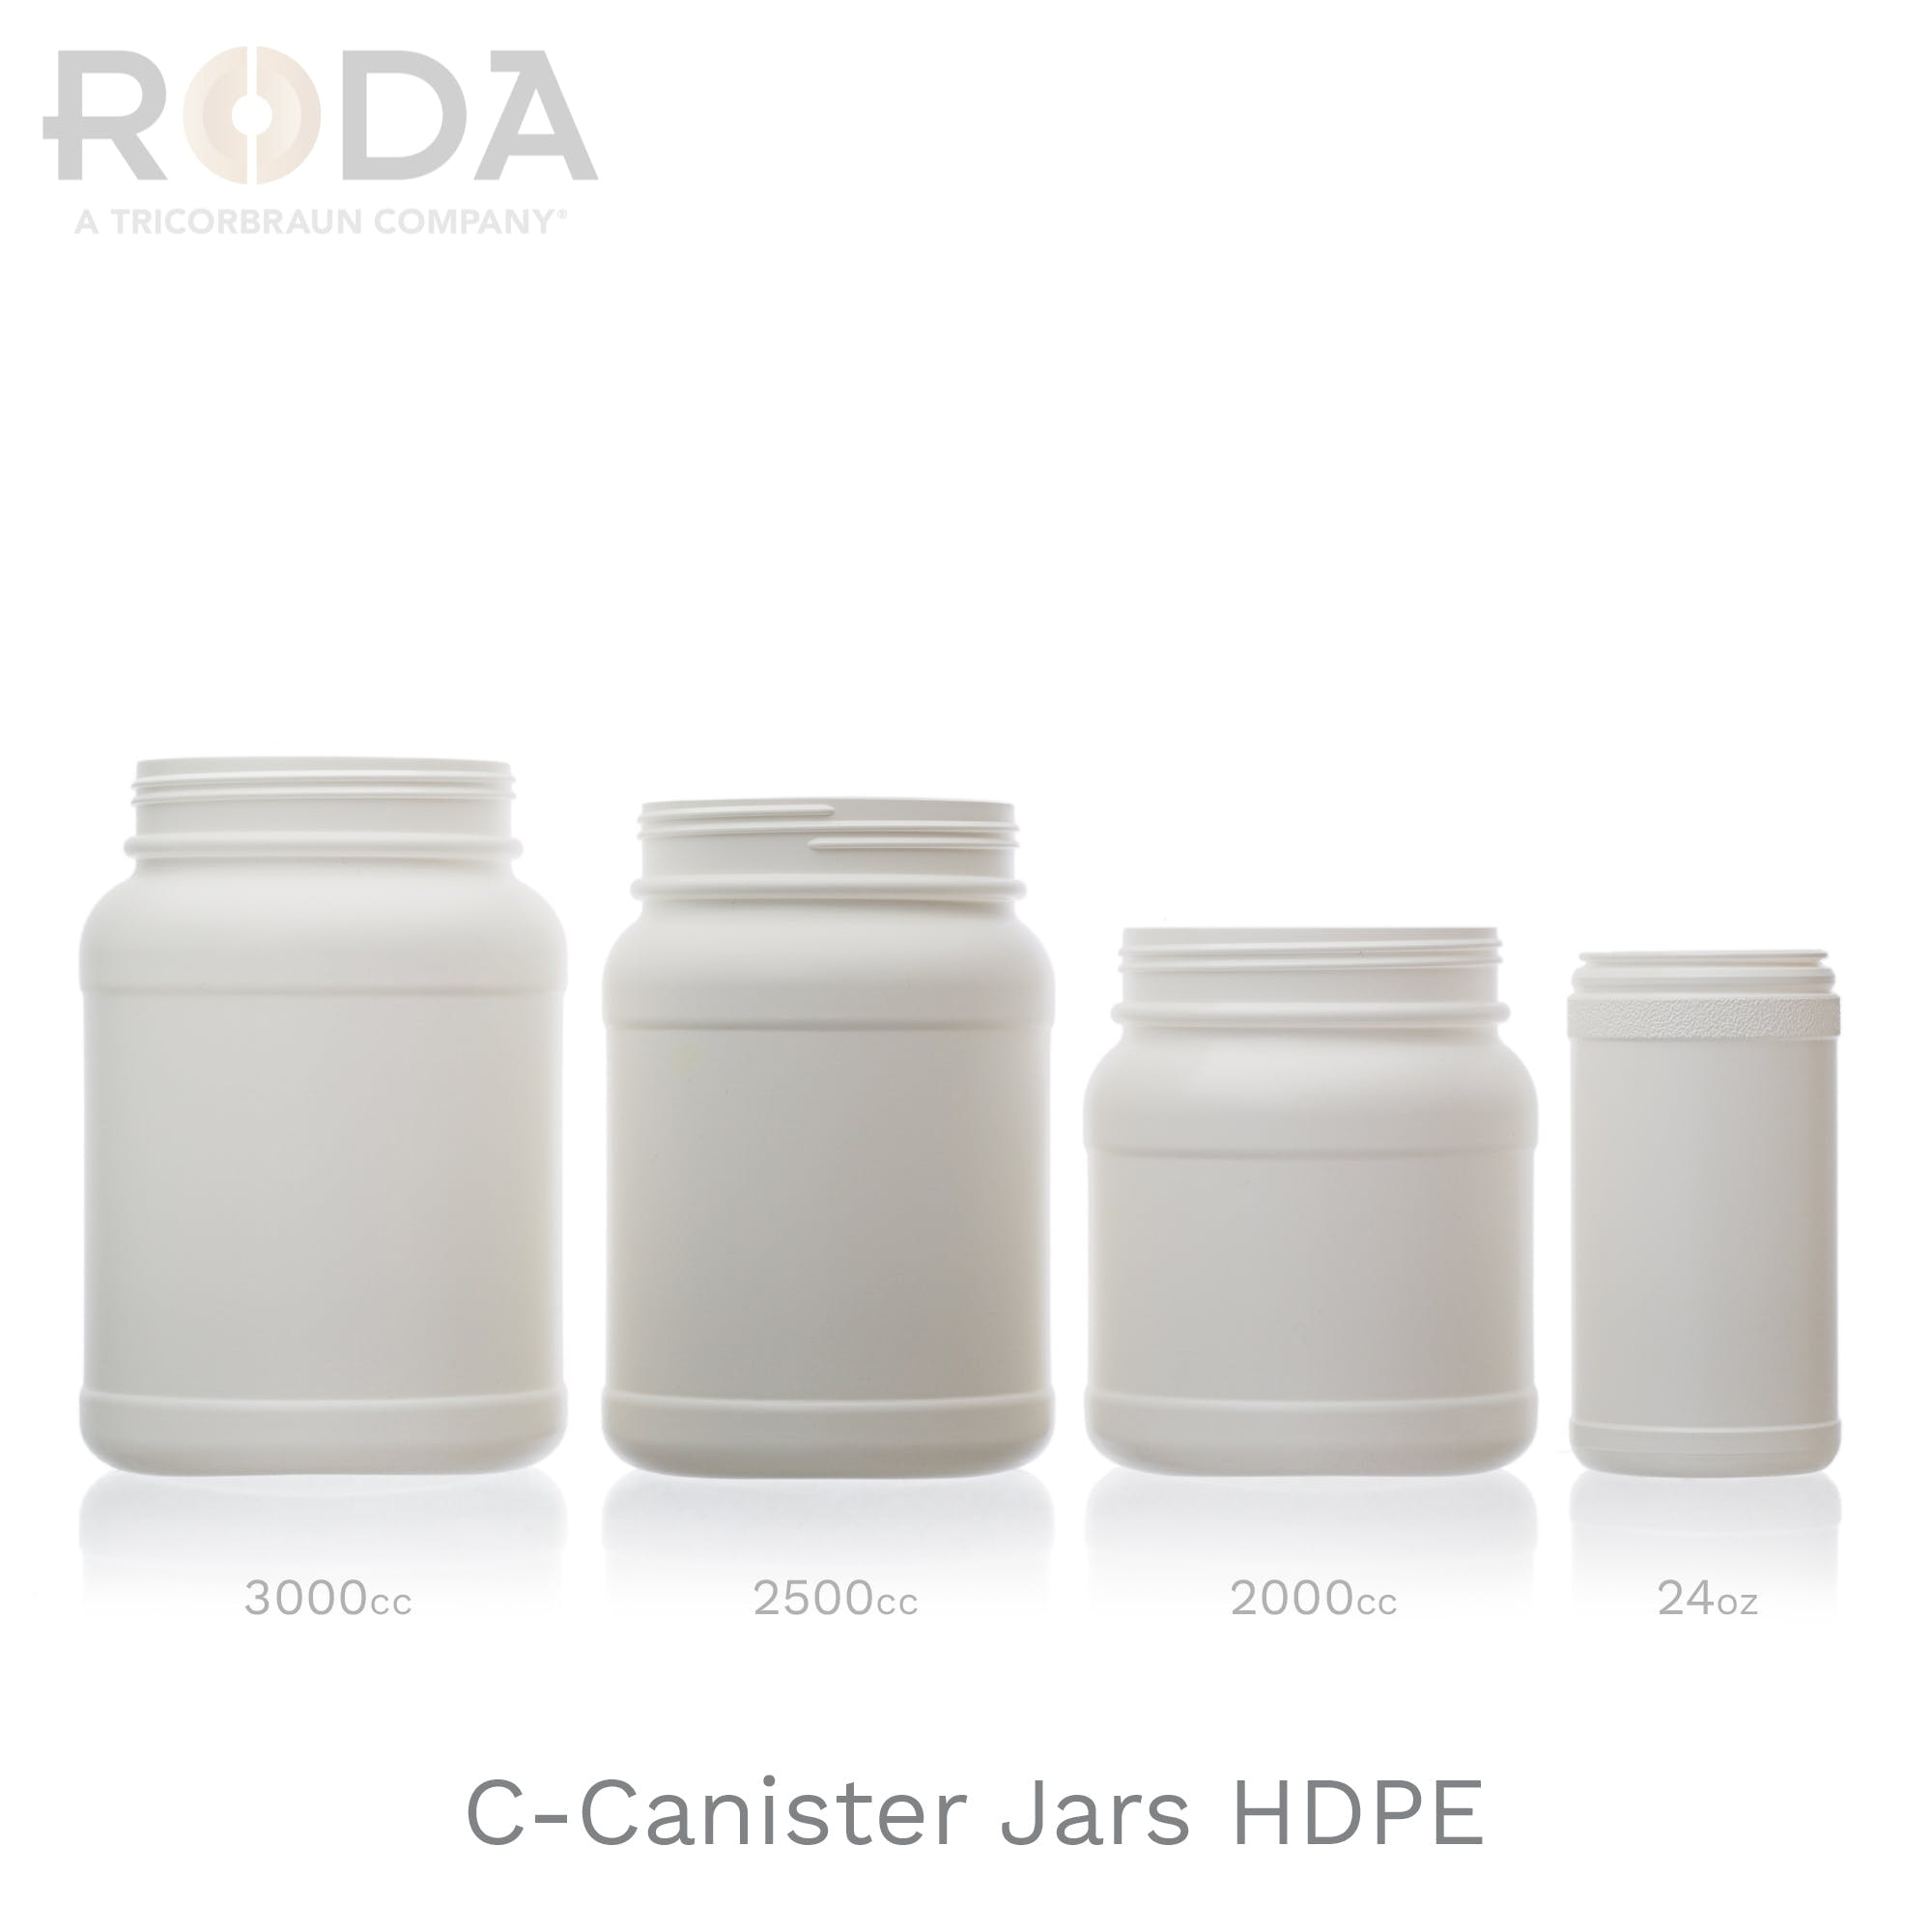 C-Canister Jars HDPE